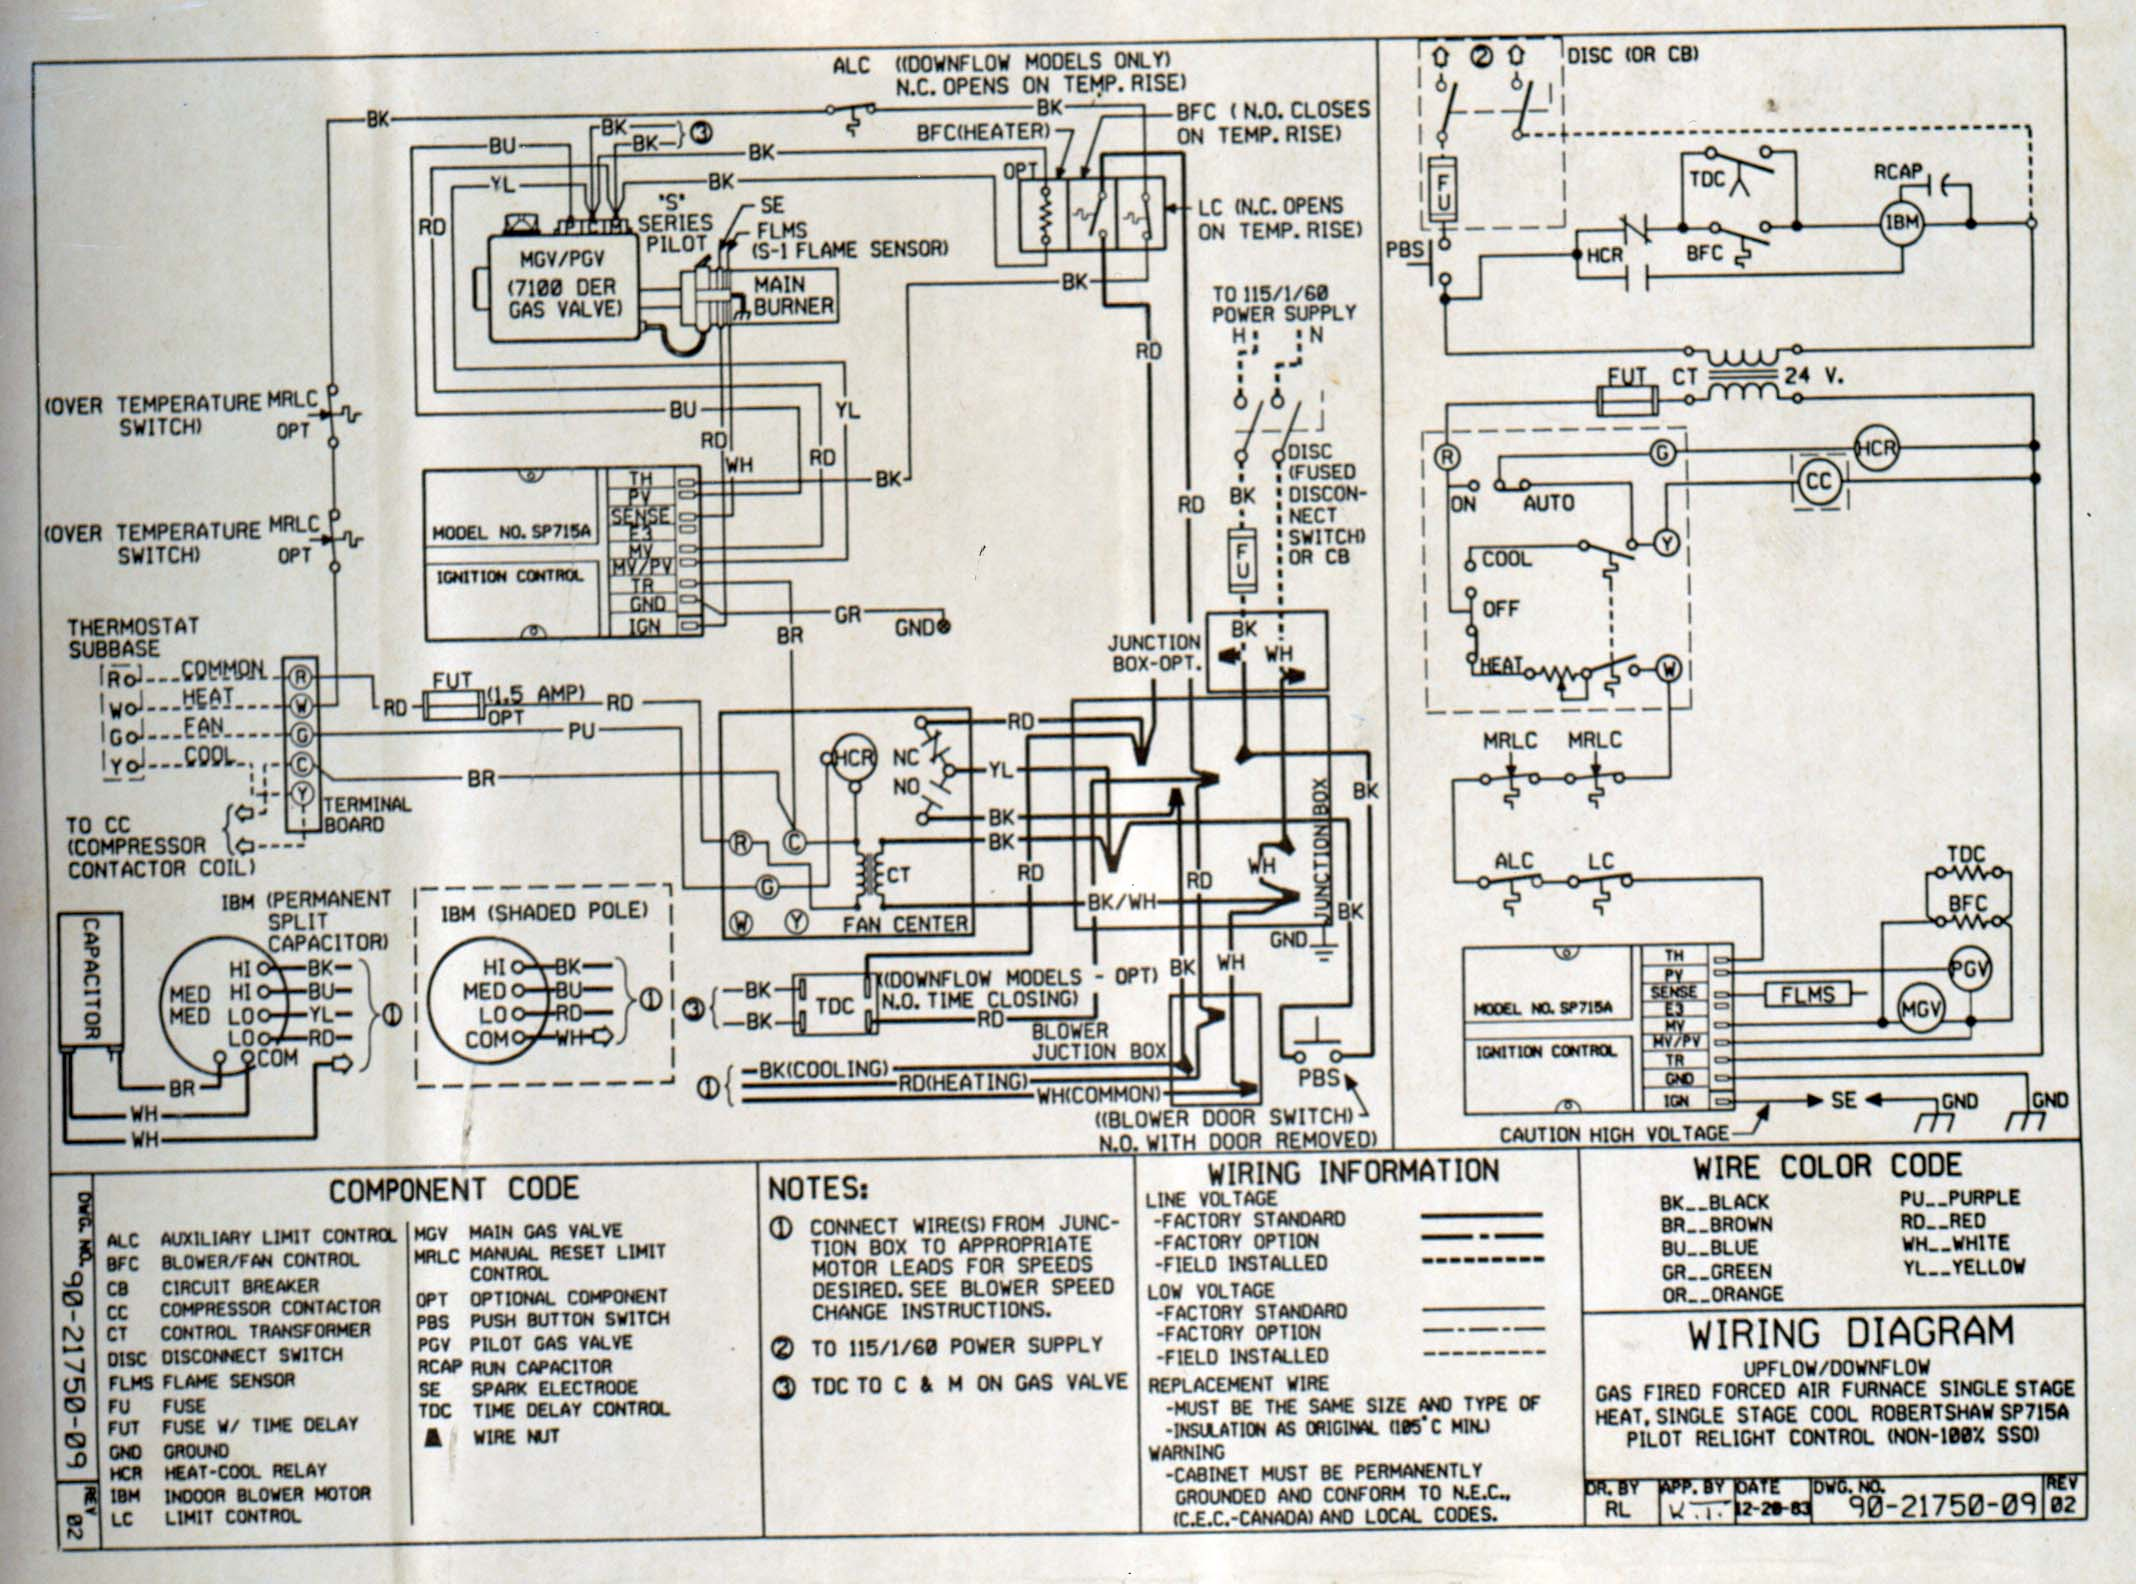 Wiring Diagram Older Furnace Heater Relay Opinions About 4 Speed Fan Motor Diagrams Won T Stop Running After The Heating Cycle Is Done Rh Justanswer Com Blower Schematic